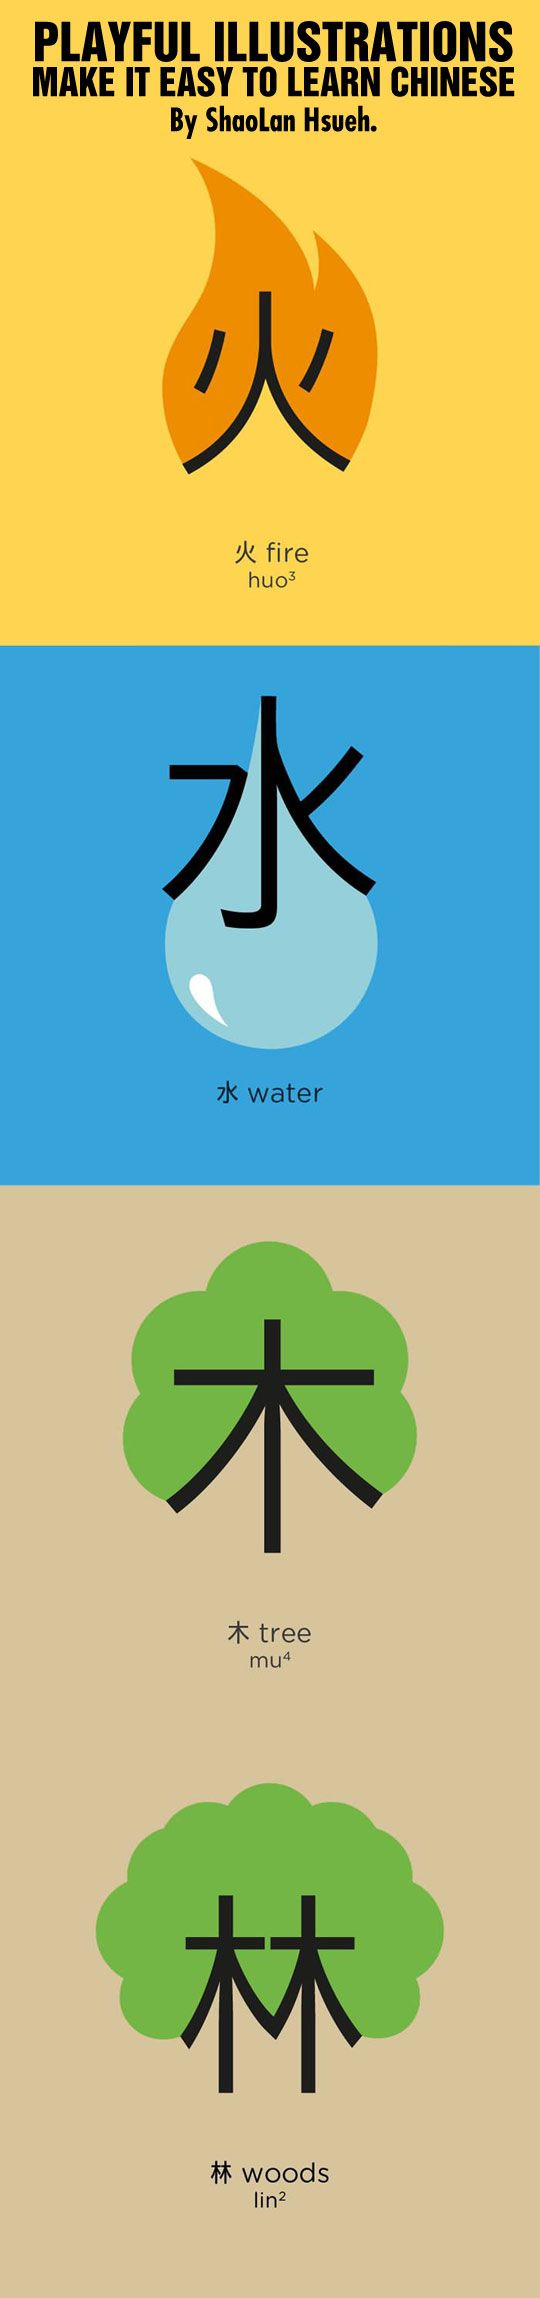 Playful illustrations make it easy to learn Chinese…